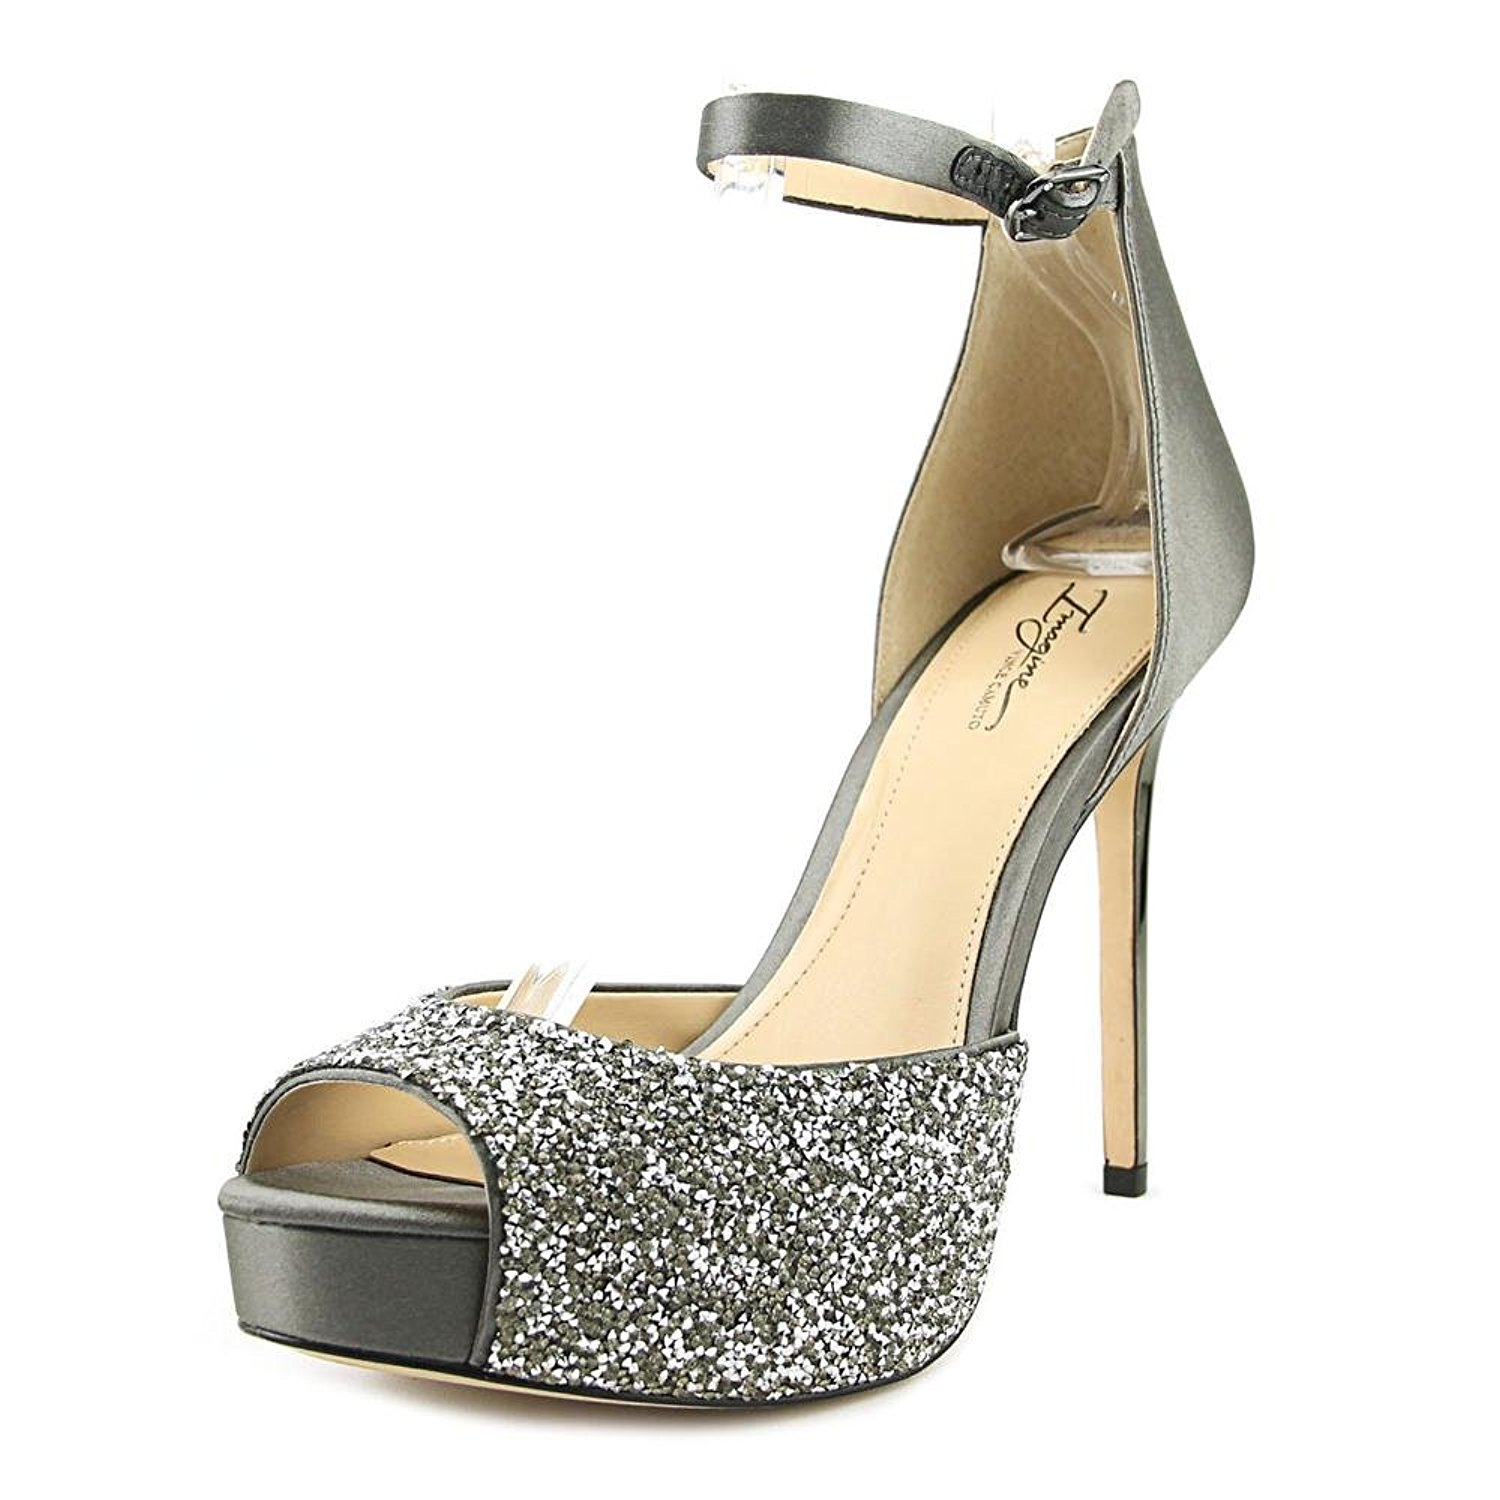 6b04f4a570c Imagine Vince Camuto Women s Karleigh Crystal Strap Dress Pumps ...